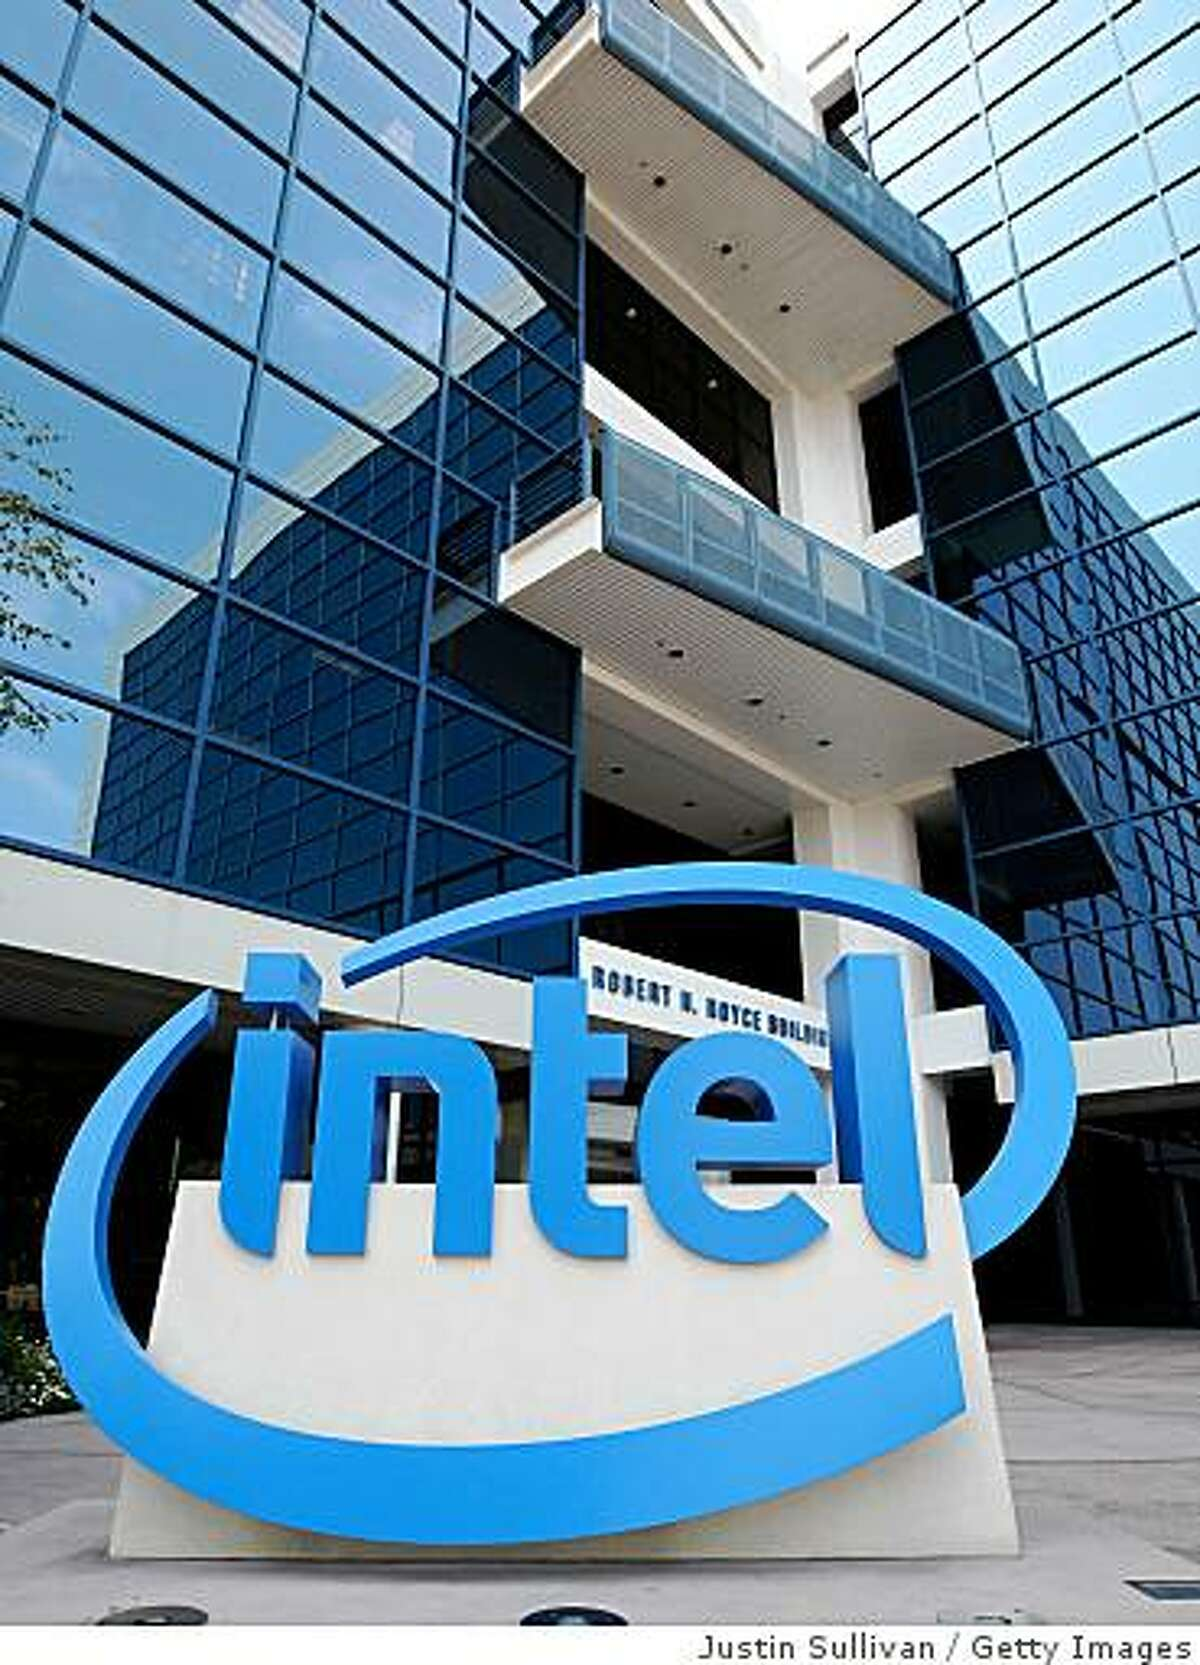 SANTA CLARA, CA - JULY 15, 2008: (FILE) An Intel sign is displayed in front of company headquarters July 15, 2008 in Santa Clara, California. Chipmaker Intel announced Janaury 21, 2009 that it is cutting production at two U.S. plants and closing three other facilities in Asia, affecting up to 6,000 workers. (Photo by Justin Sullivan/Getty Images)